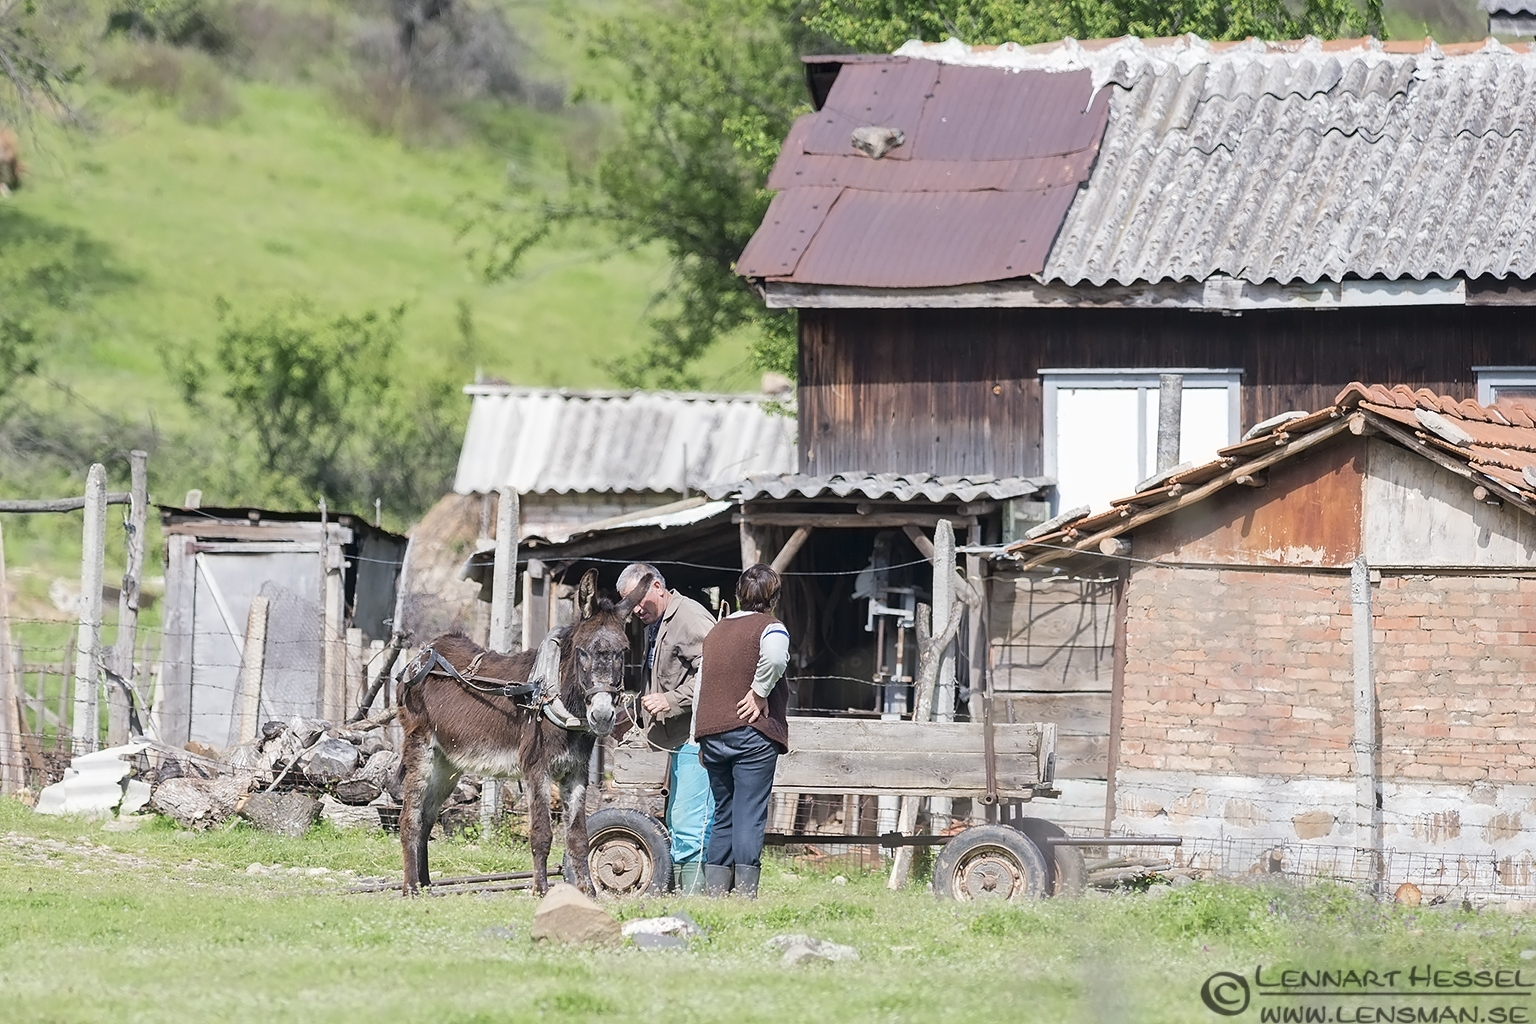 Preparing the Donkey in Bulgaria